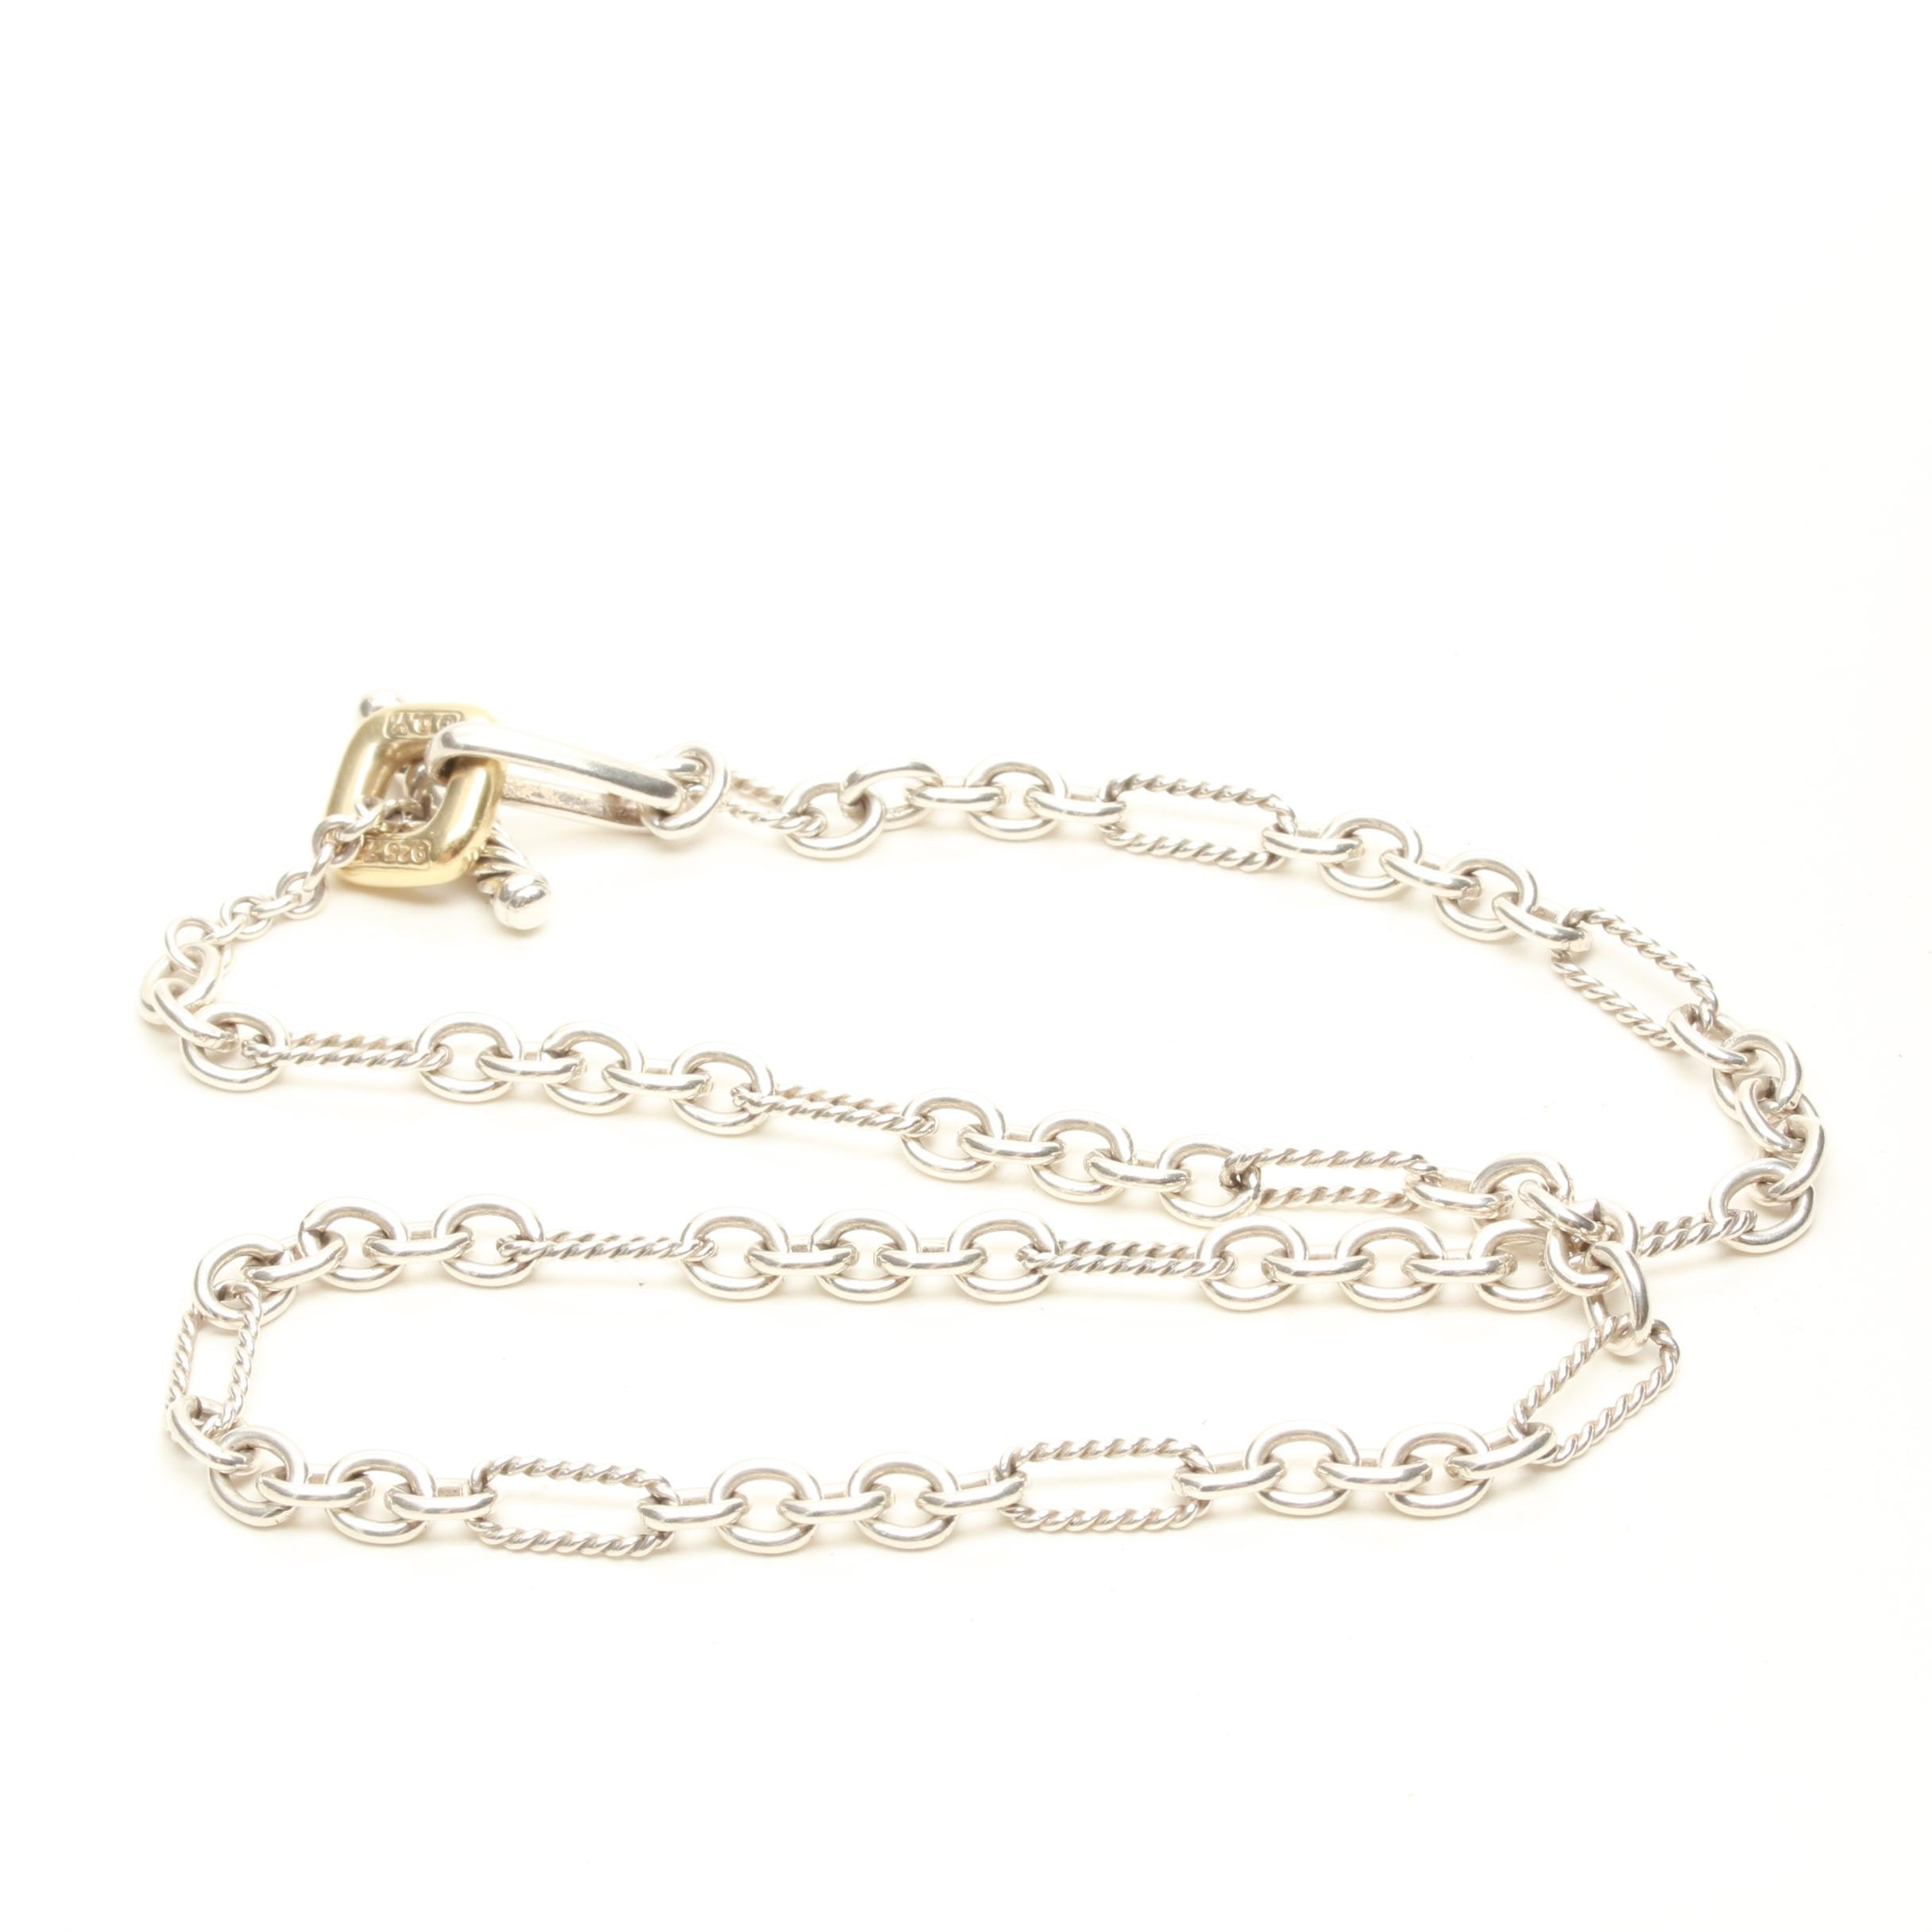 David Yurman Sterling Silver Figaro Chain Necklace with 18K Findings